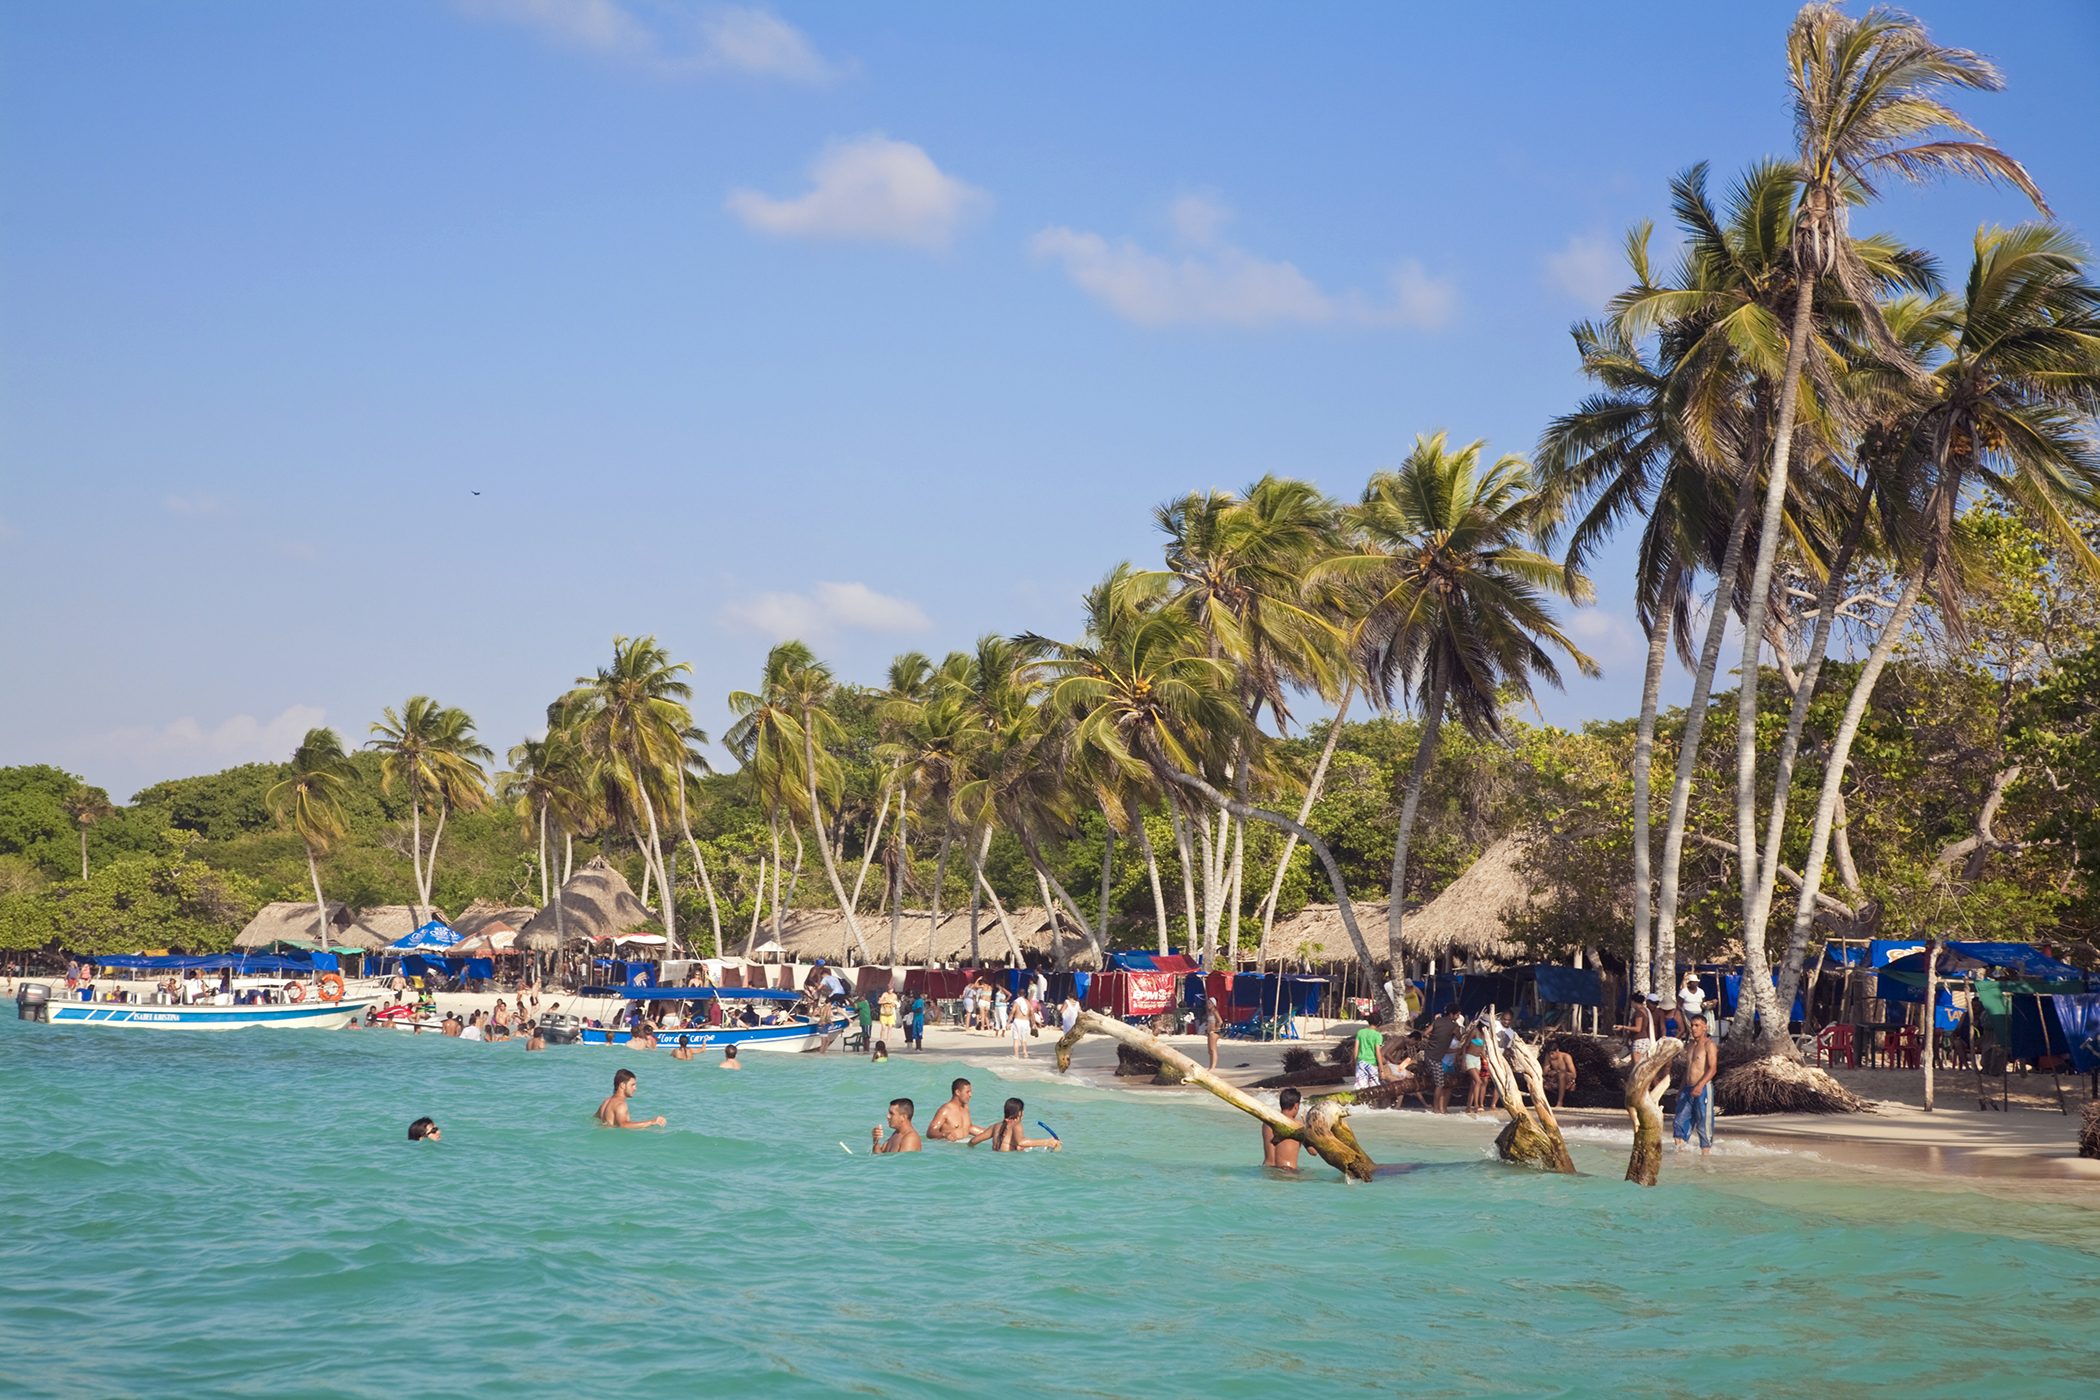 170316-travel-best-beaches-playa-blanca-colombia